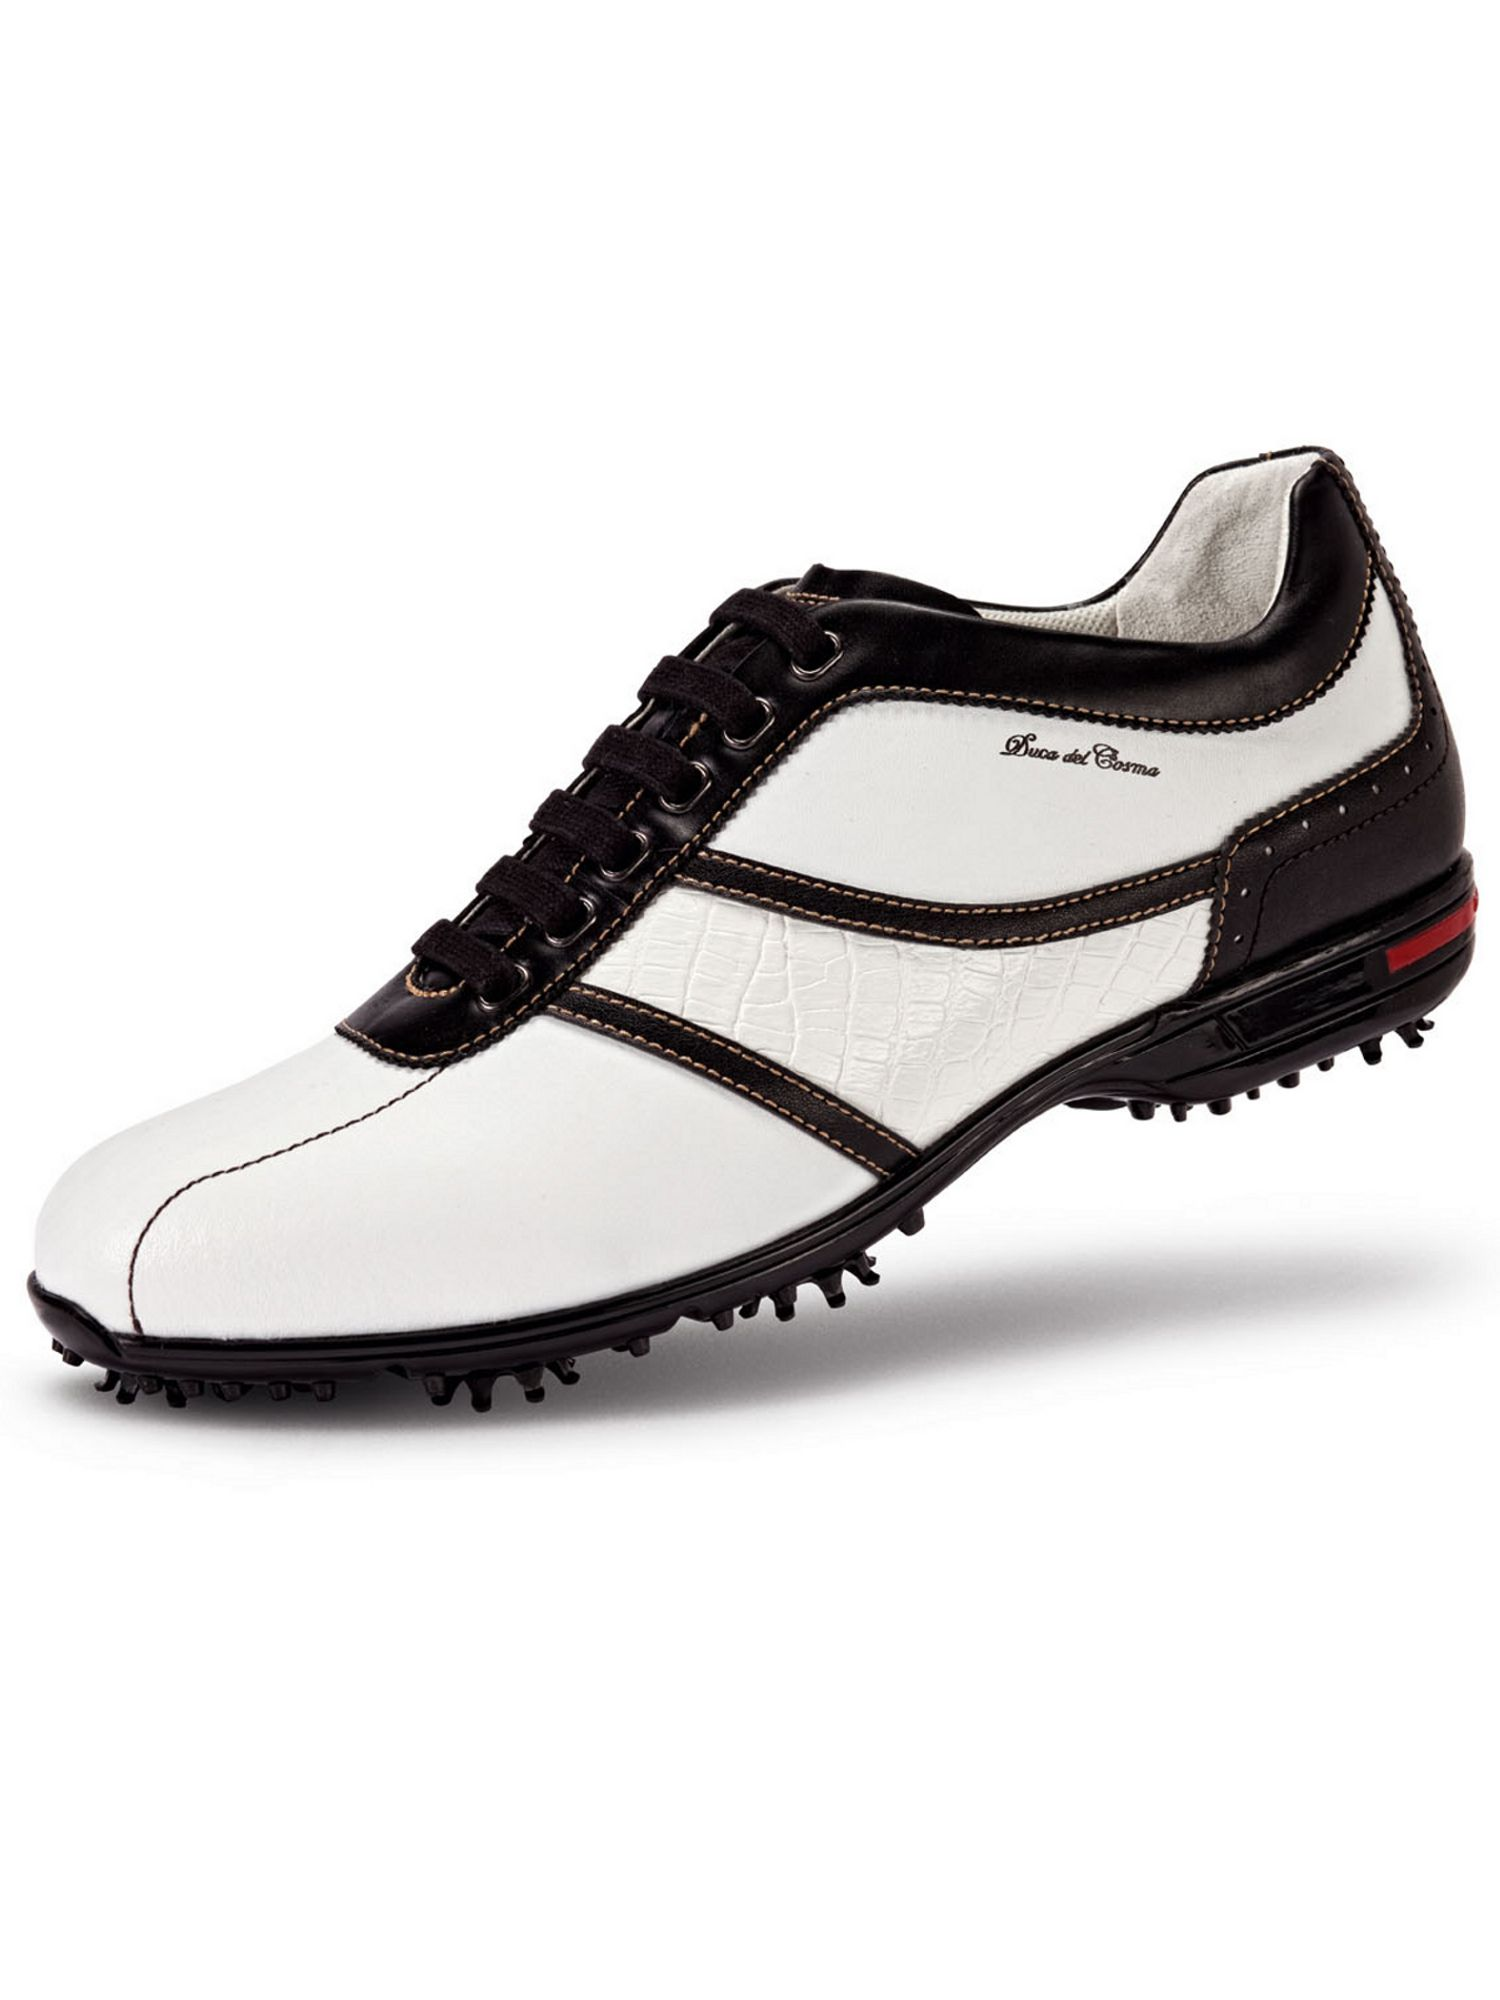 Beatball golf shoes